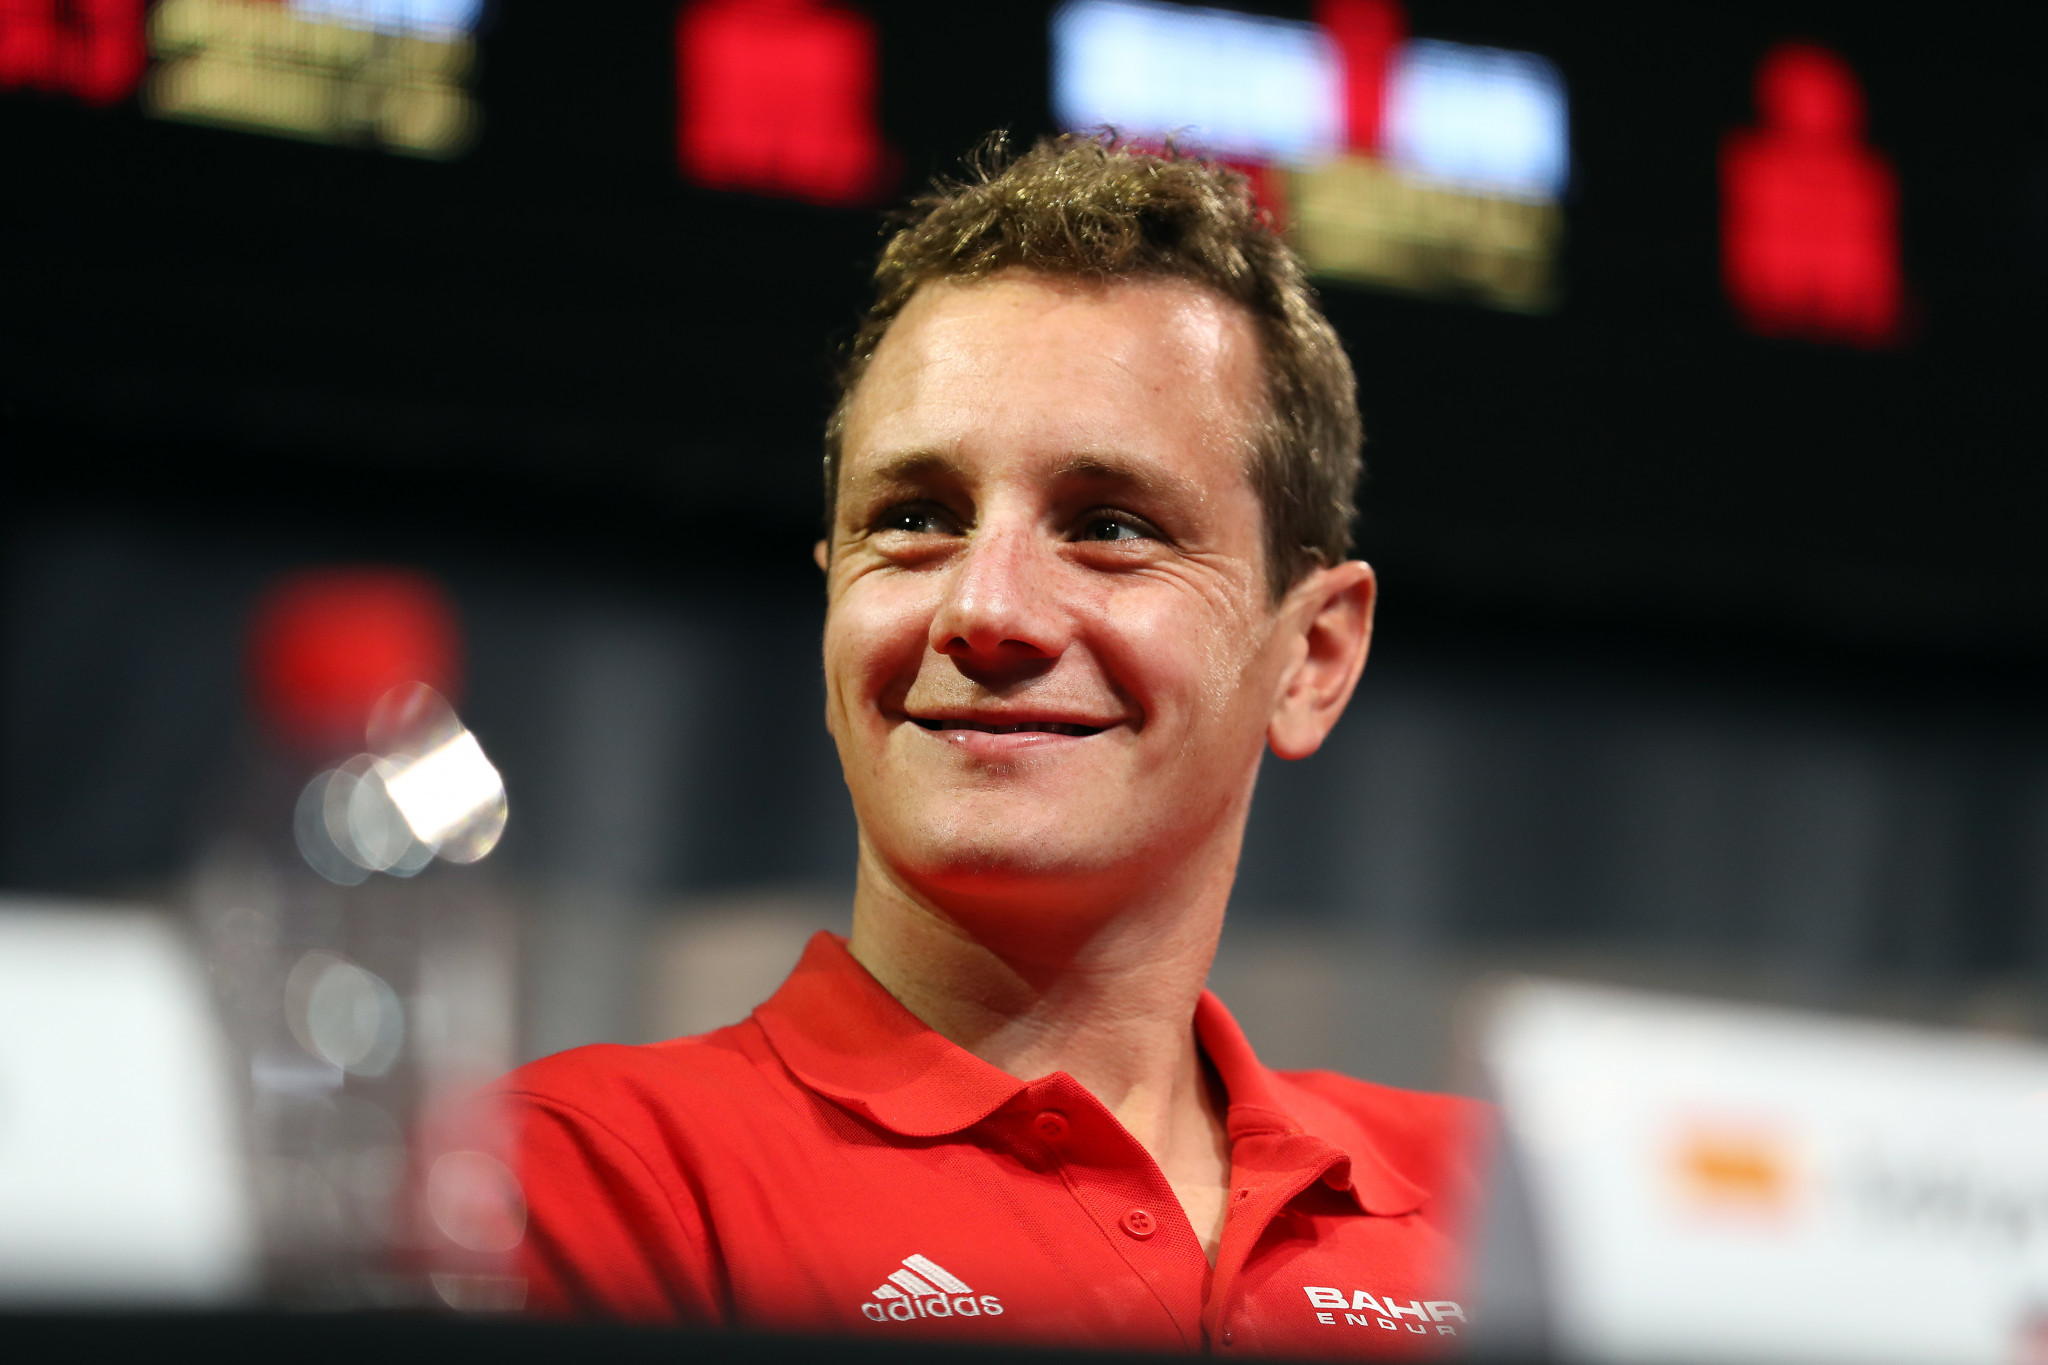 Alistair Brownlee has been proposed for membership of the IOC Athletes' Commission by the British Olympic Association ©Getty Images